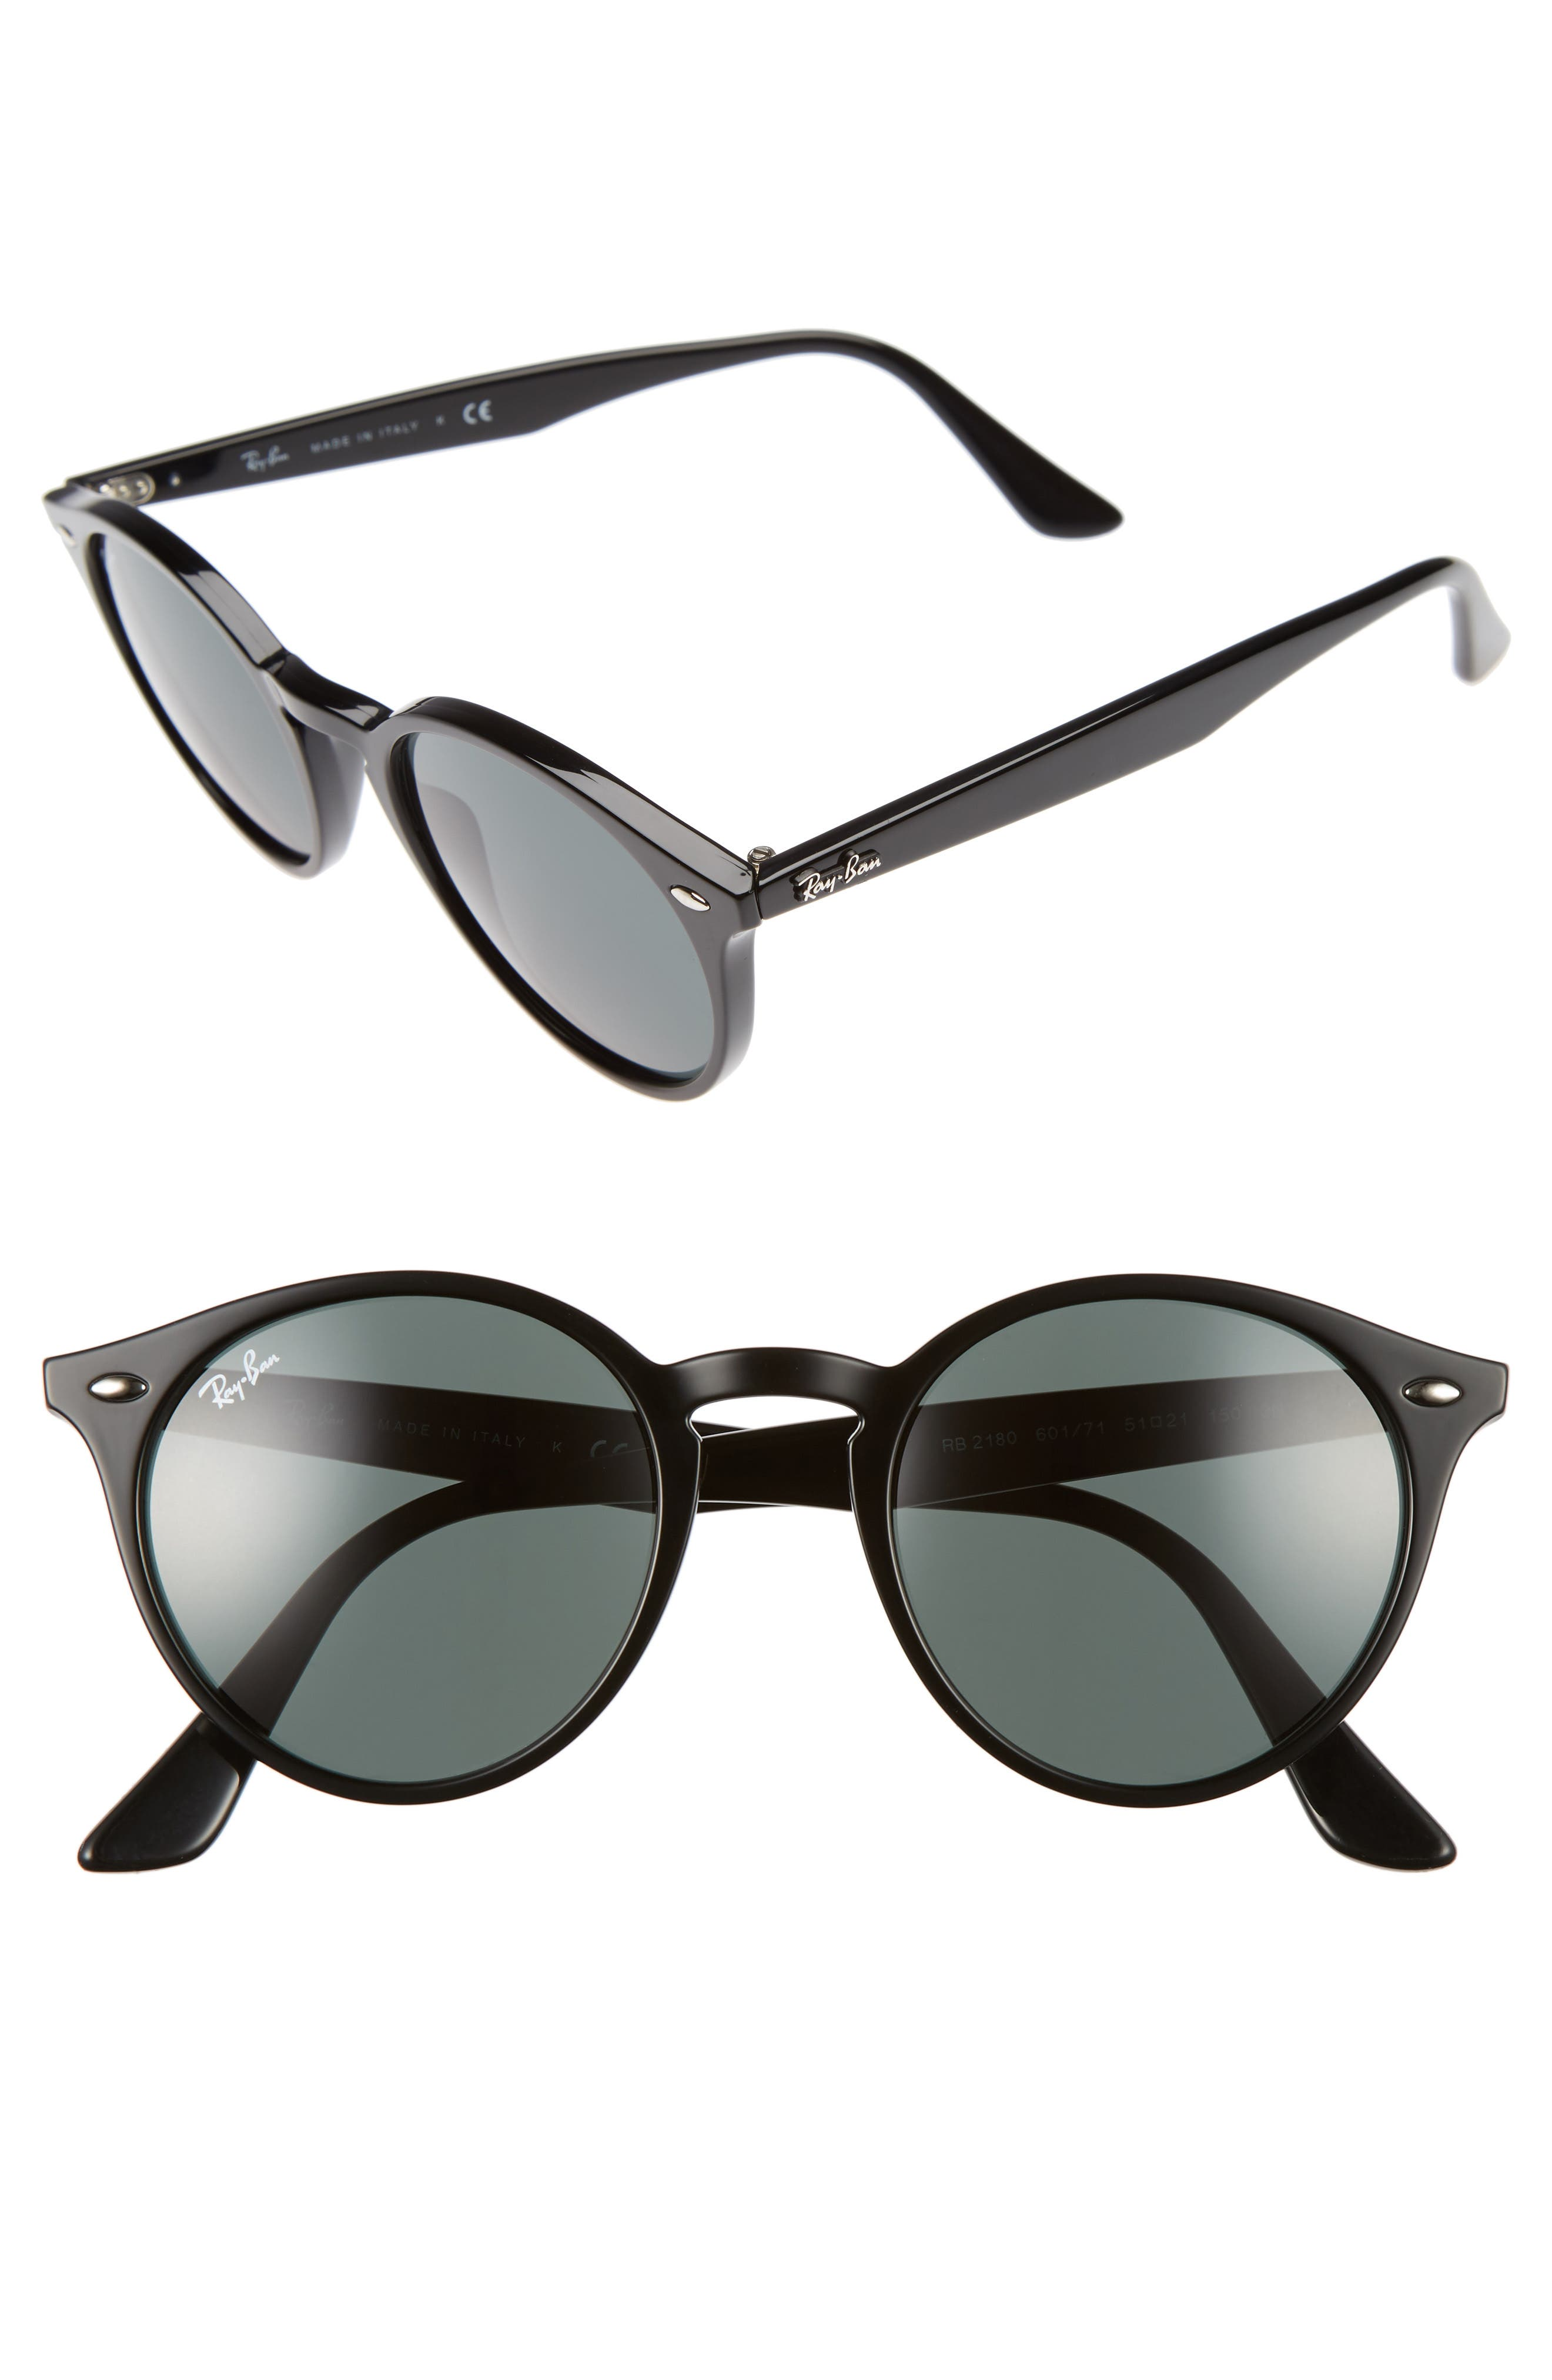 Highstreet 51mm Round Sunglasses,                         Main,                         color, 001